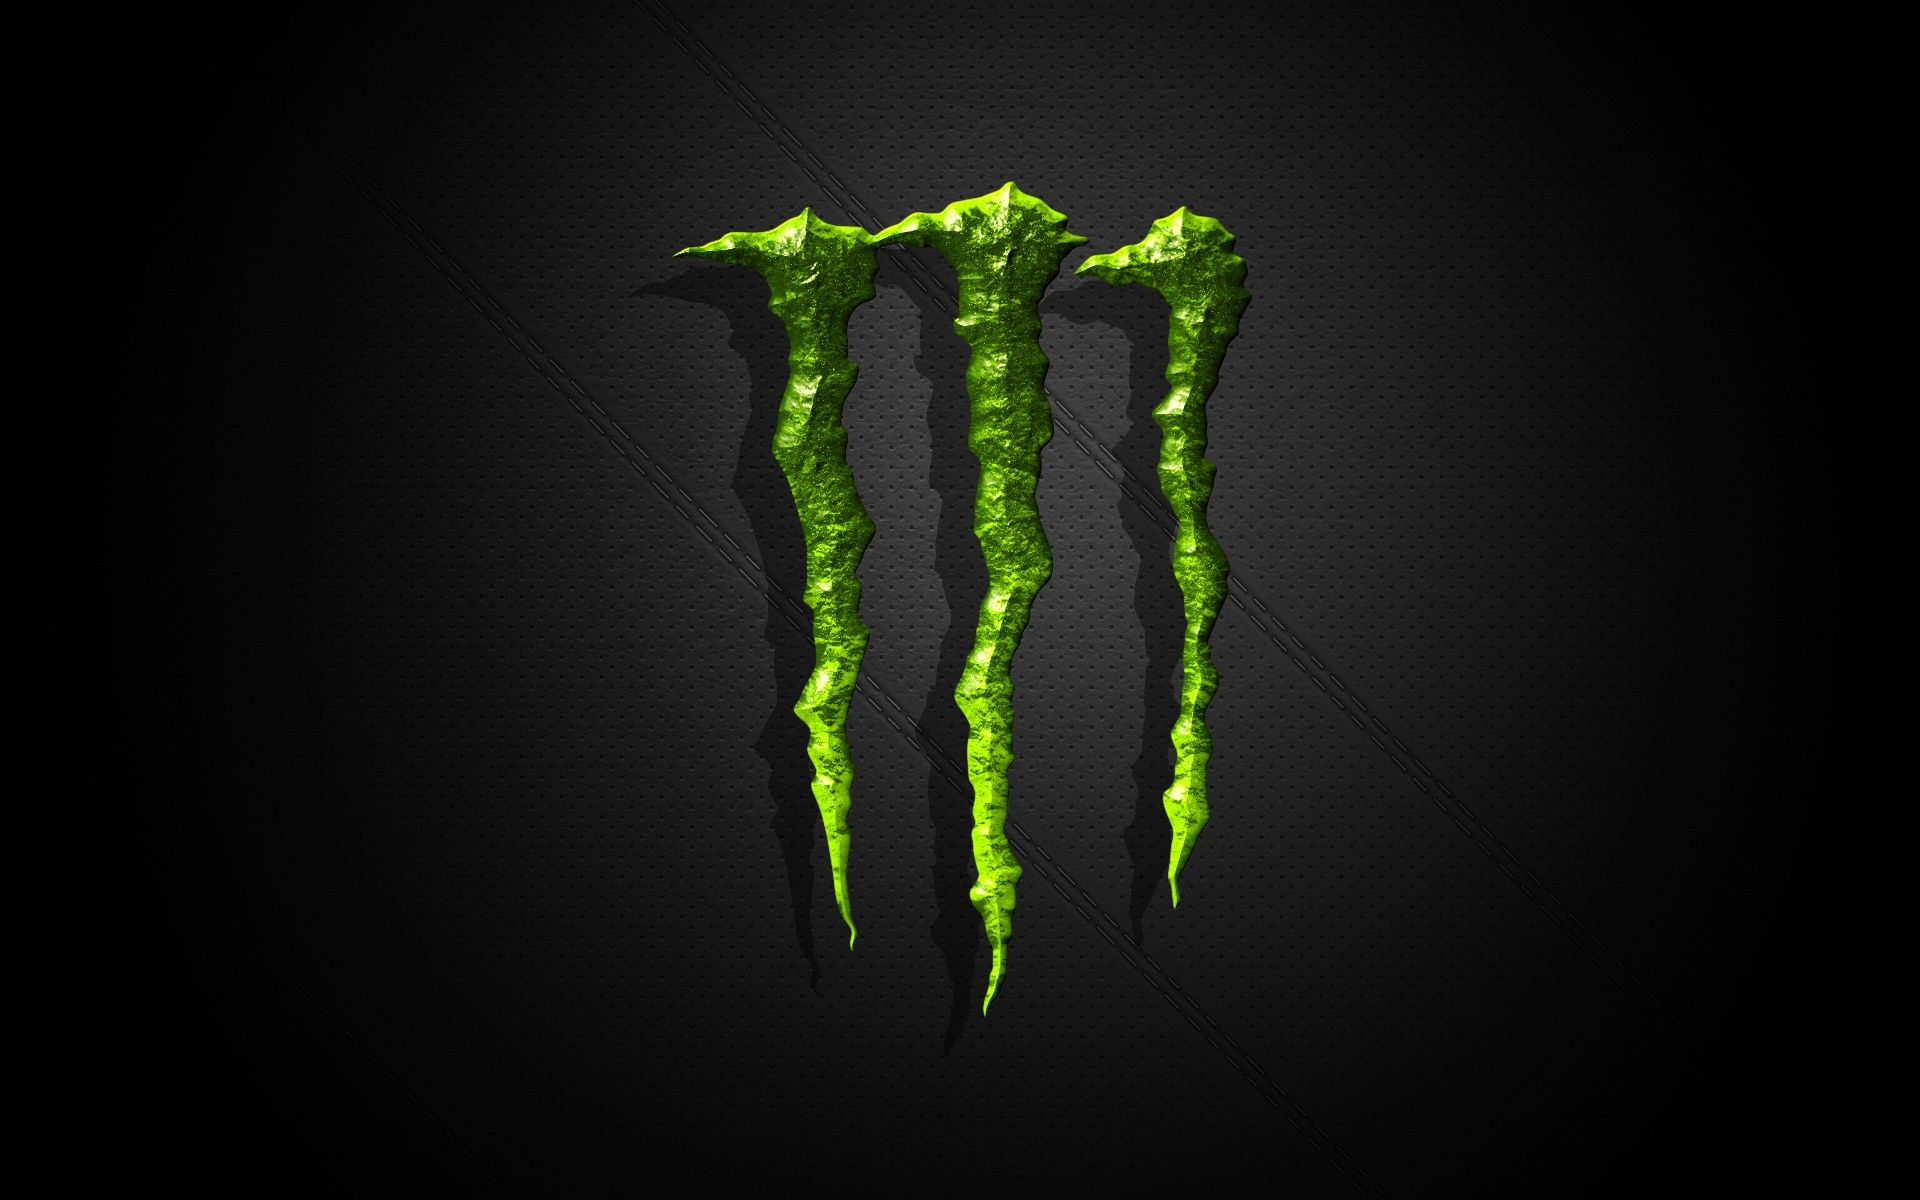 monster energy wallpaper hd hd wallpapers pinterest